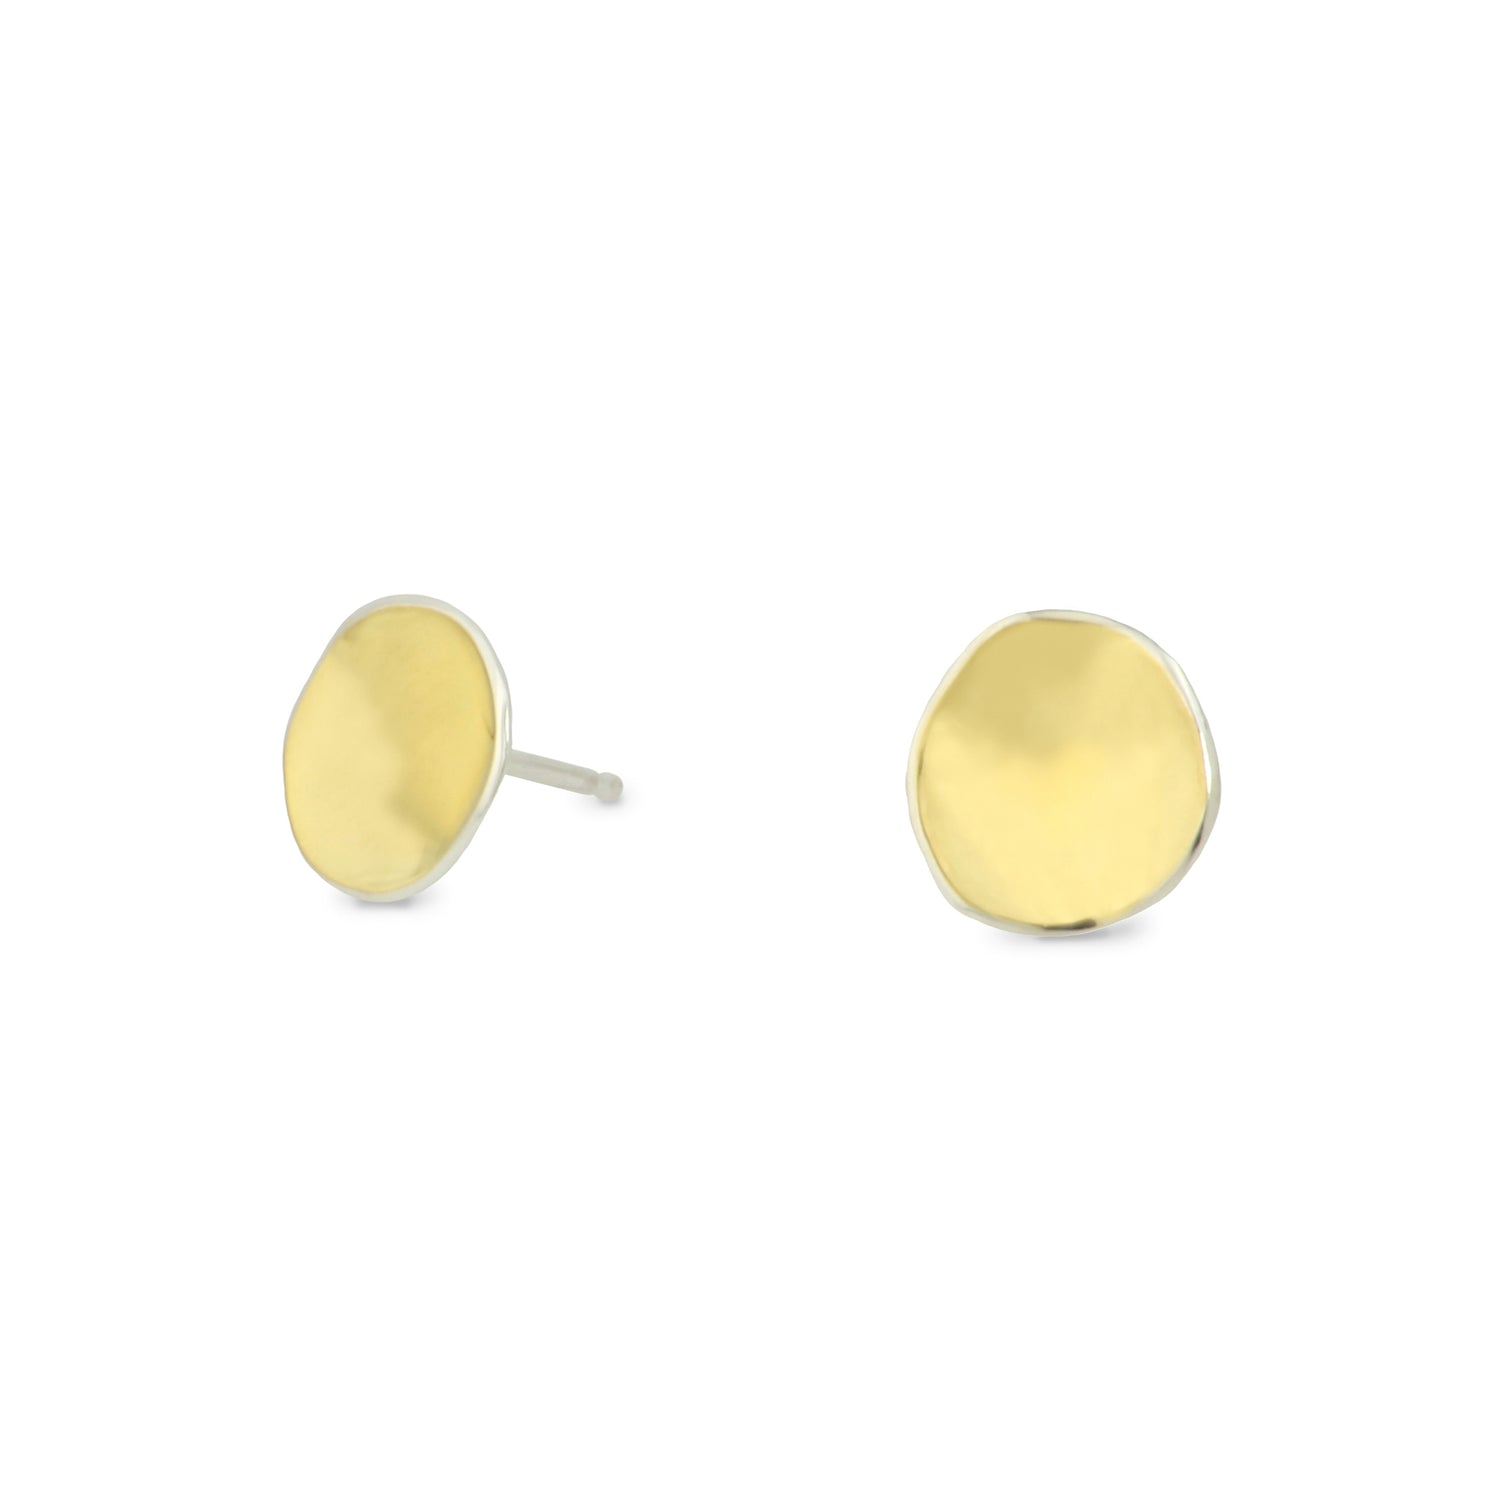 Emily Claire Designs Verge Stud Earrings